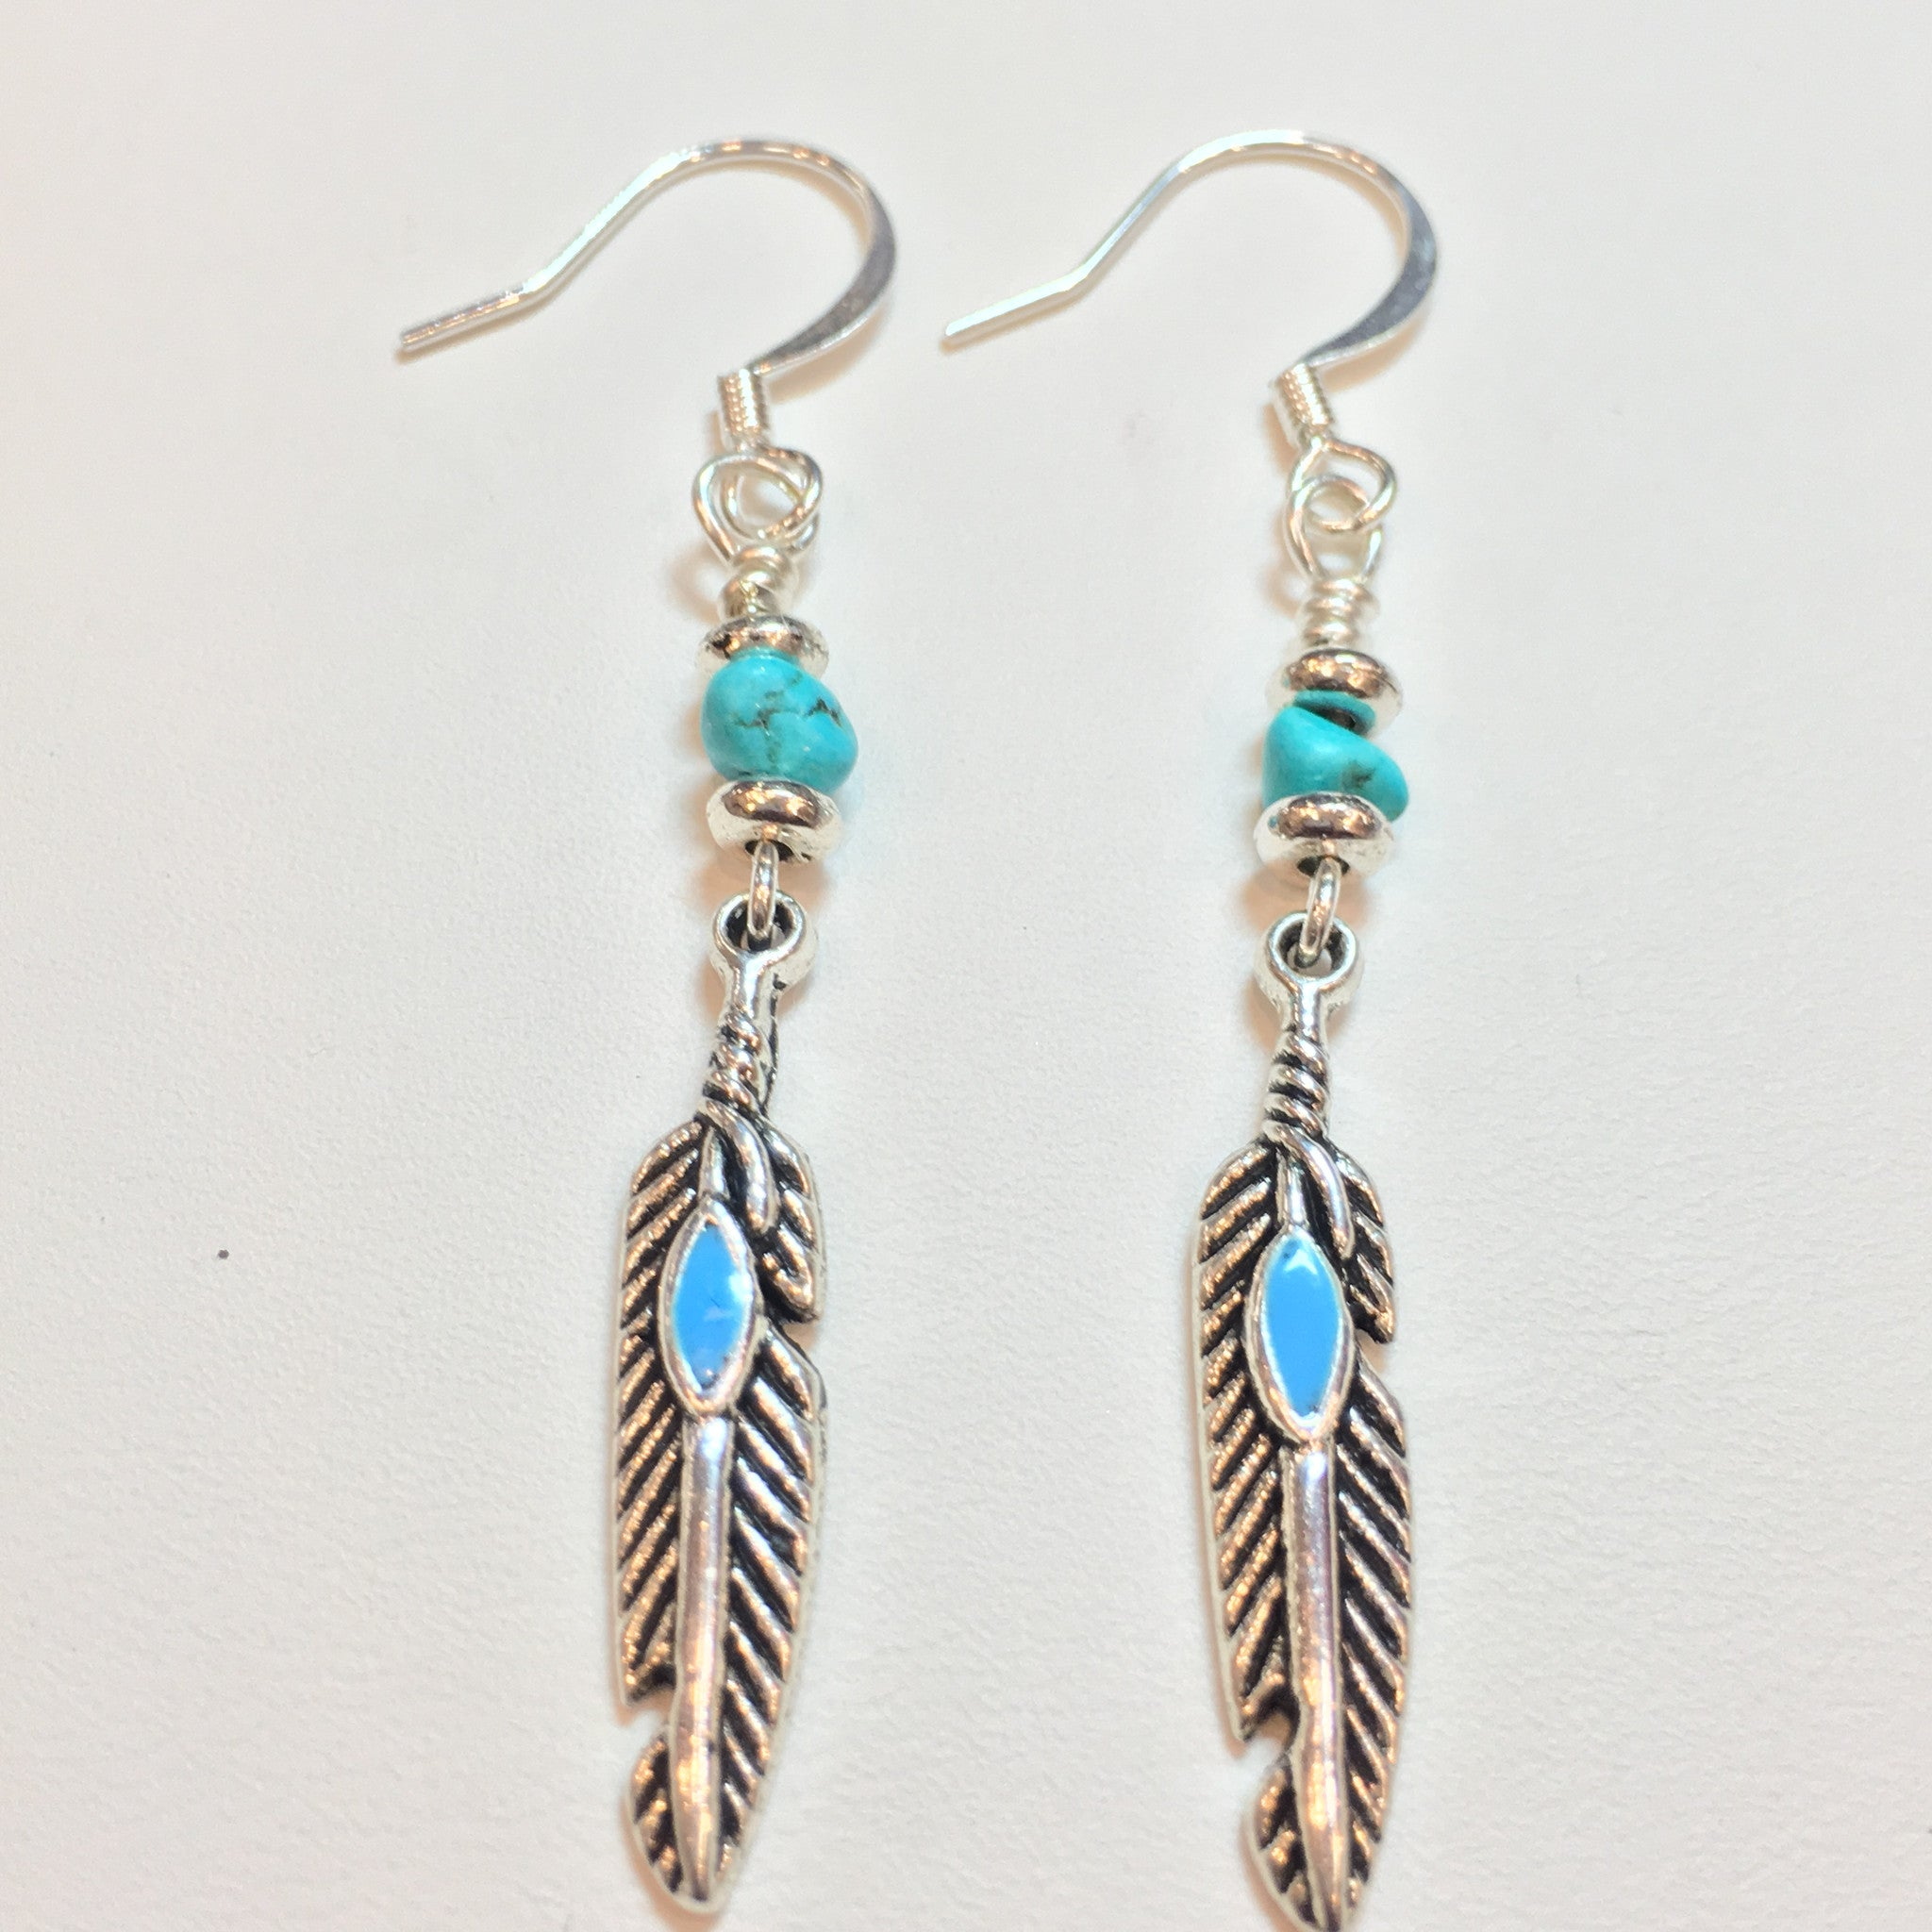 Turquoise and Silver Teardrop Earring - Real Chic Boutique  - 3